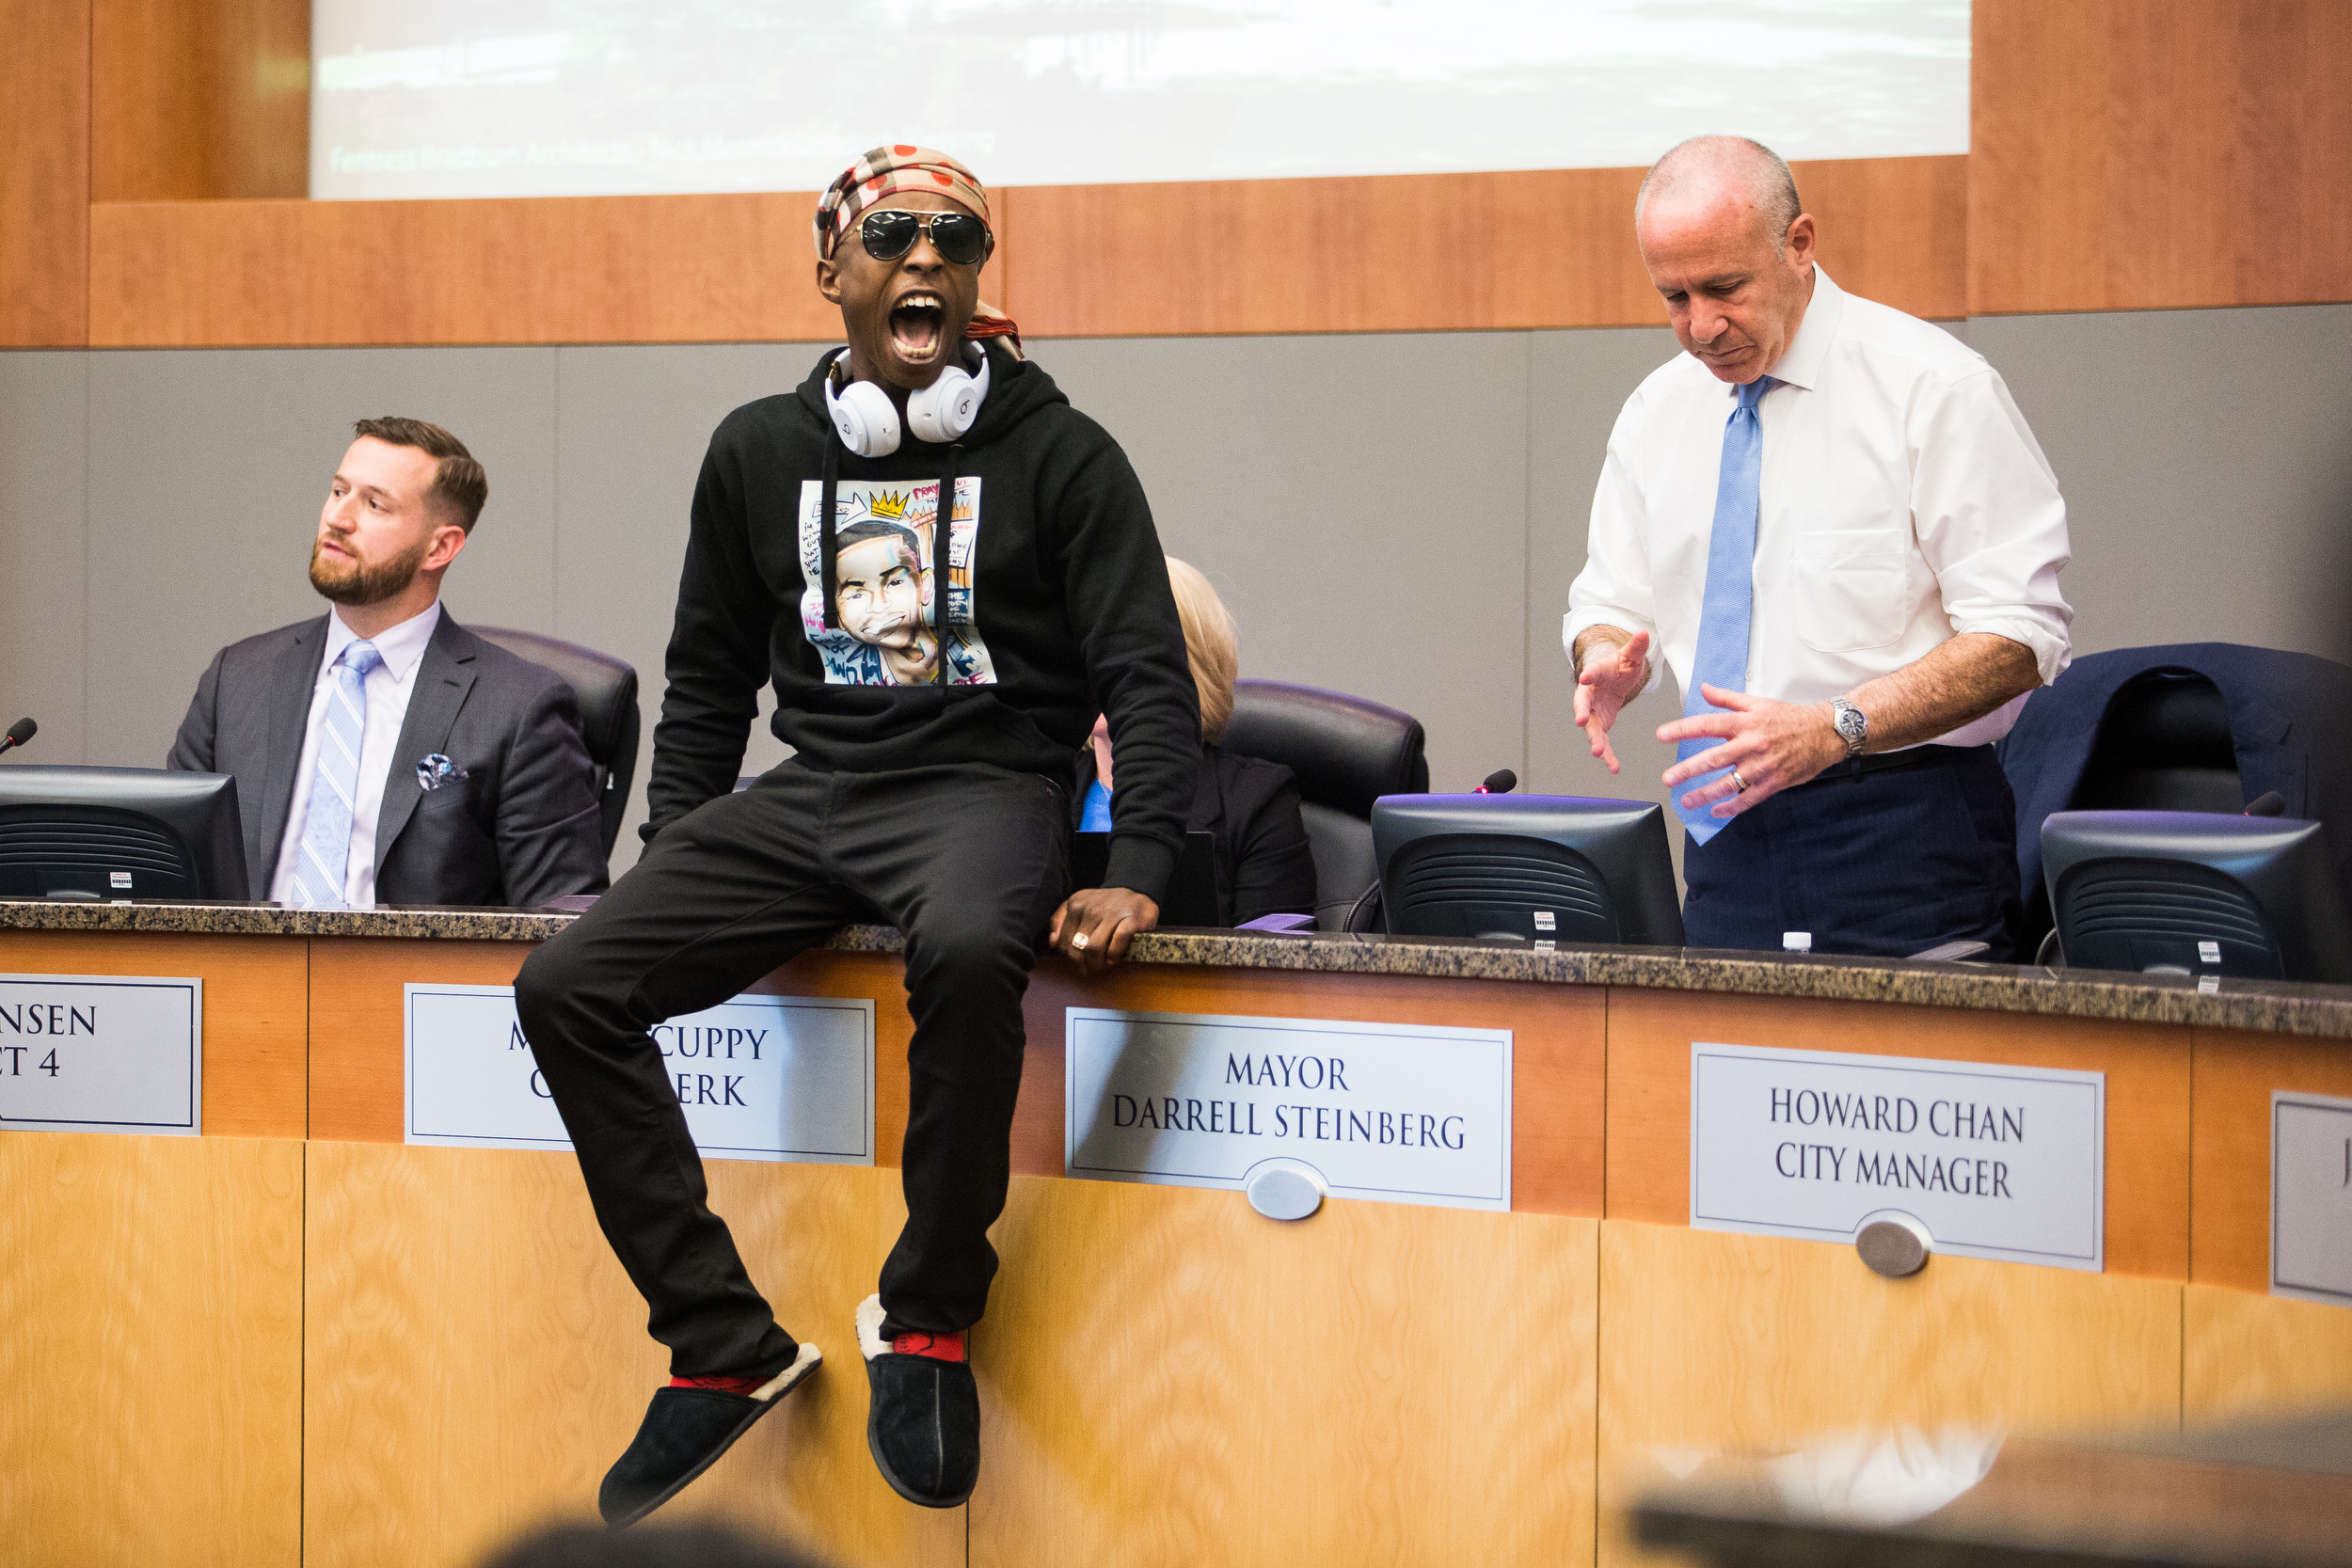 Stephon Clark's brother, Stevante Clark, angrily jumps onto the desk of Sacramento Mayor Darrell Steinberg during a city council meeting calling for public comment on the police shooting of Clark. Stevante and hundreds of protestors briefly took over both the meeting and City Hall itself.